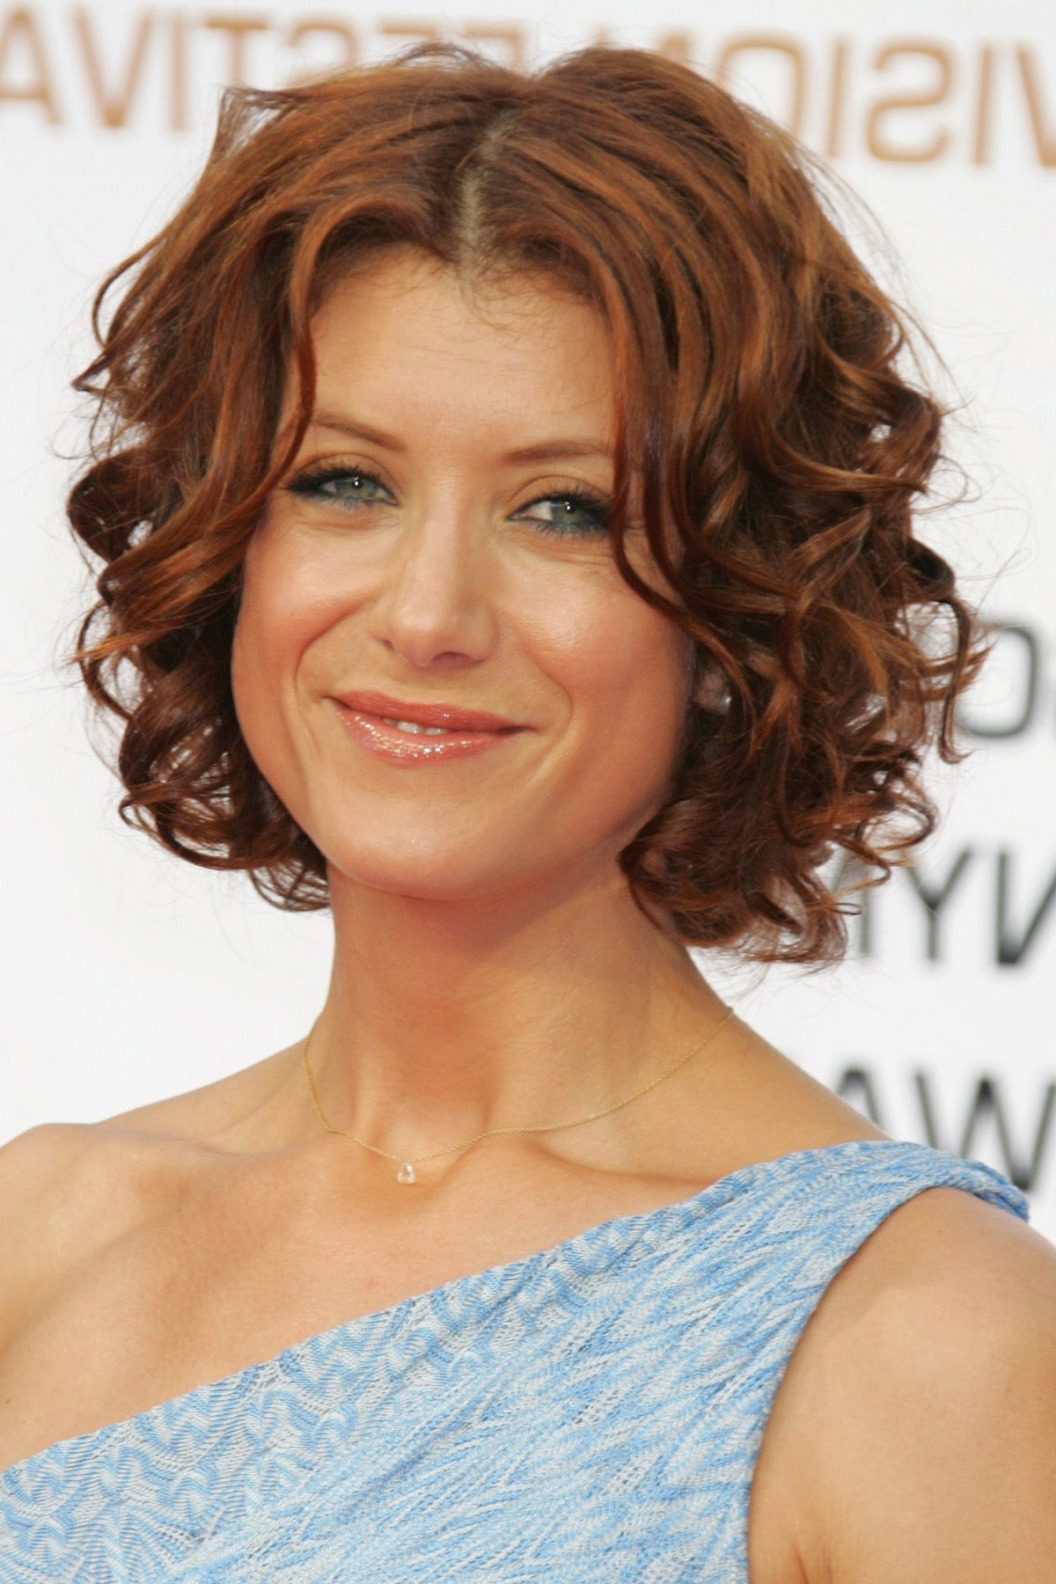 14 Best Short Curly Hairstyles For Women – Short Haircuts For Curly In Short Hairstyles For Very Curly Hair (View 2 of 25)